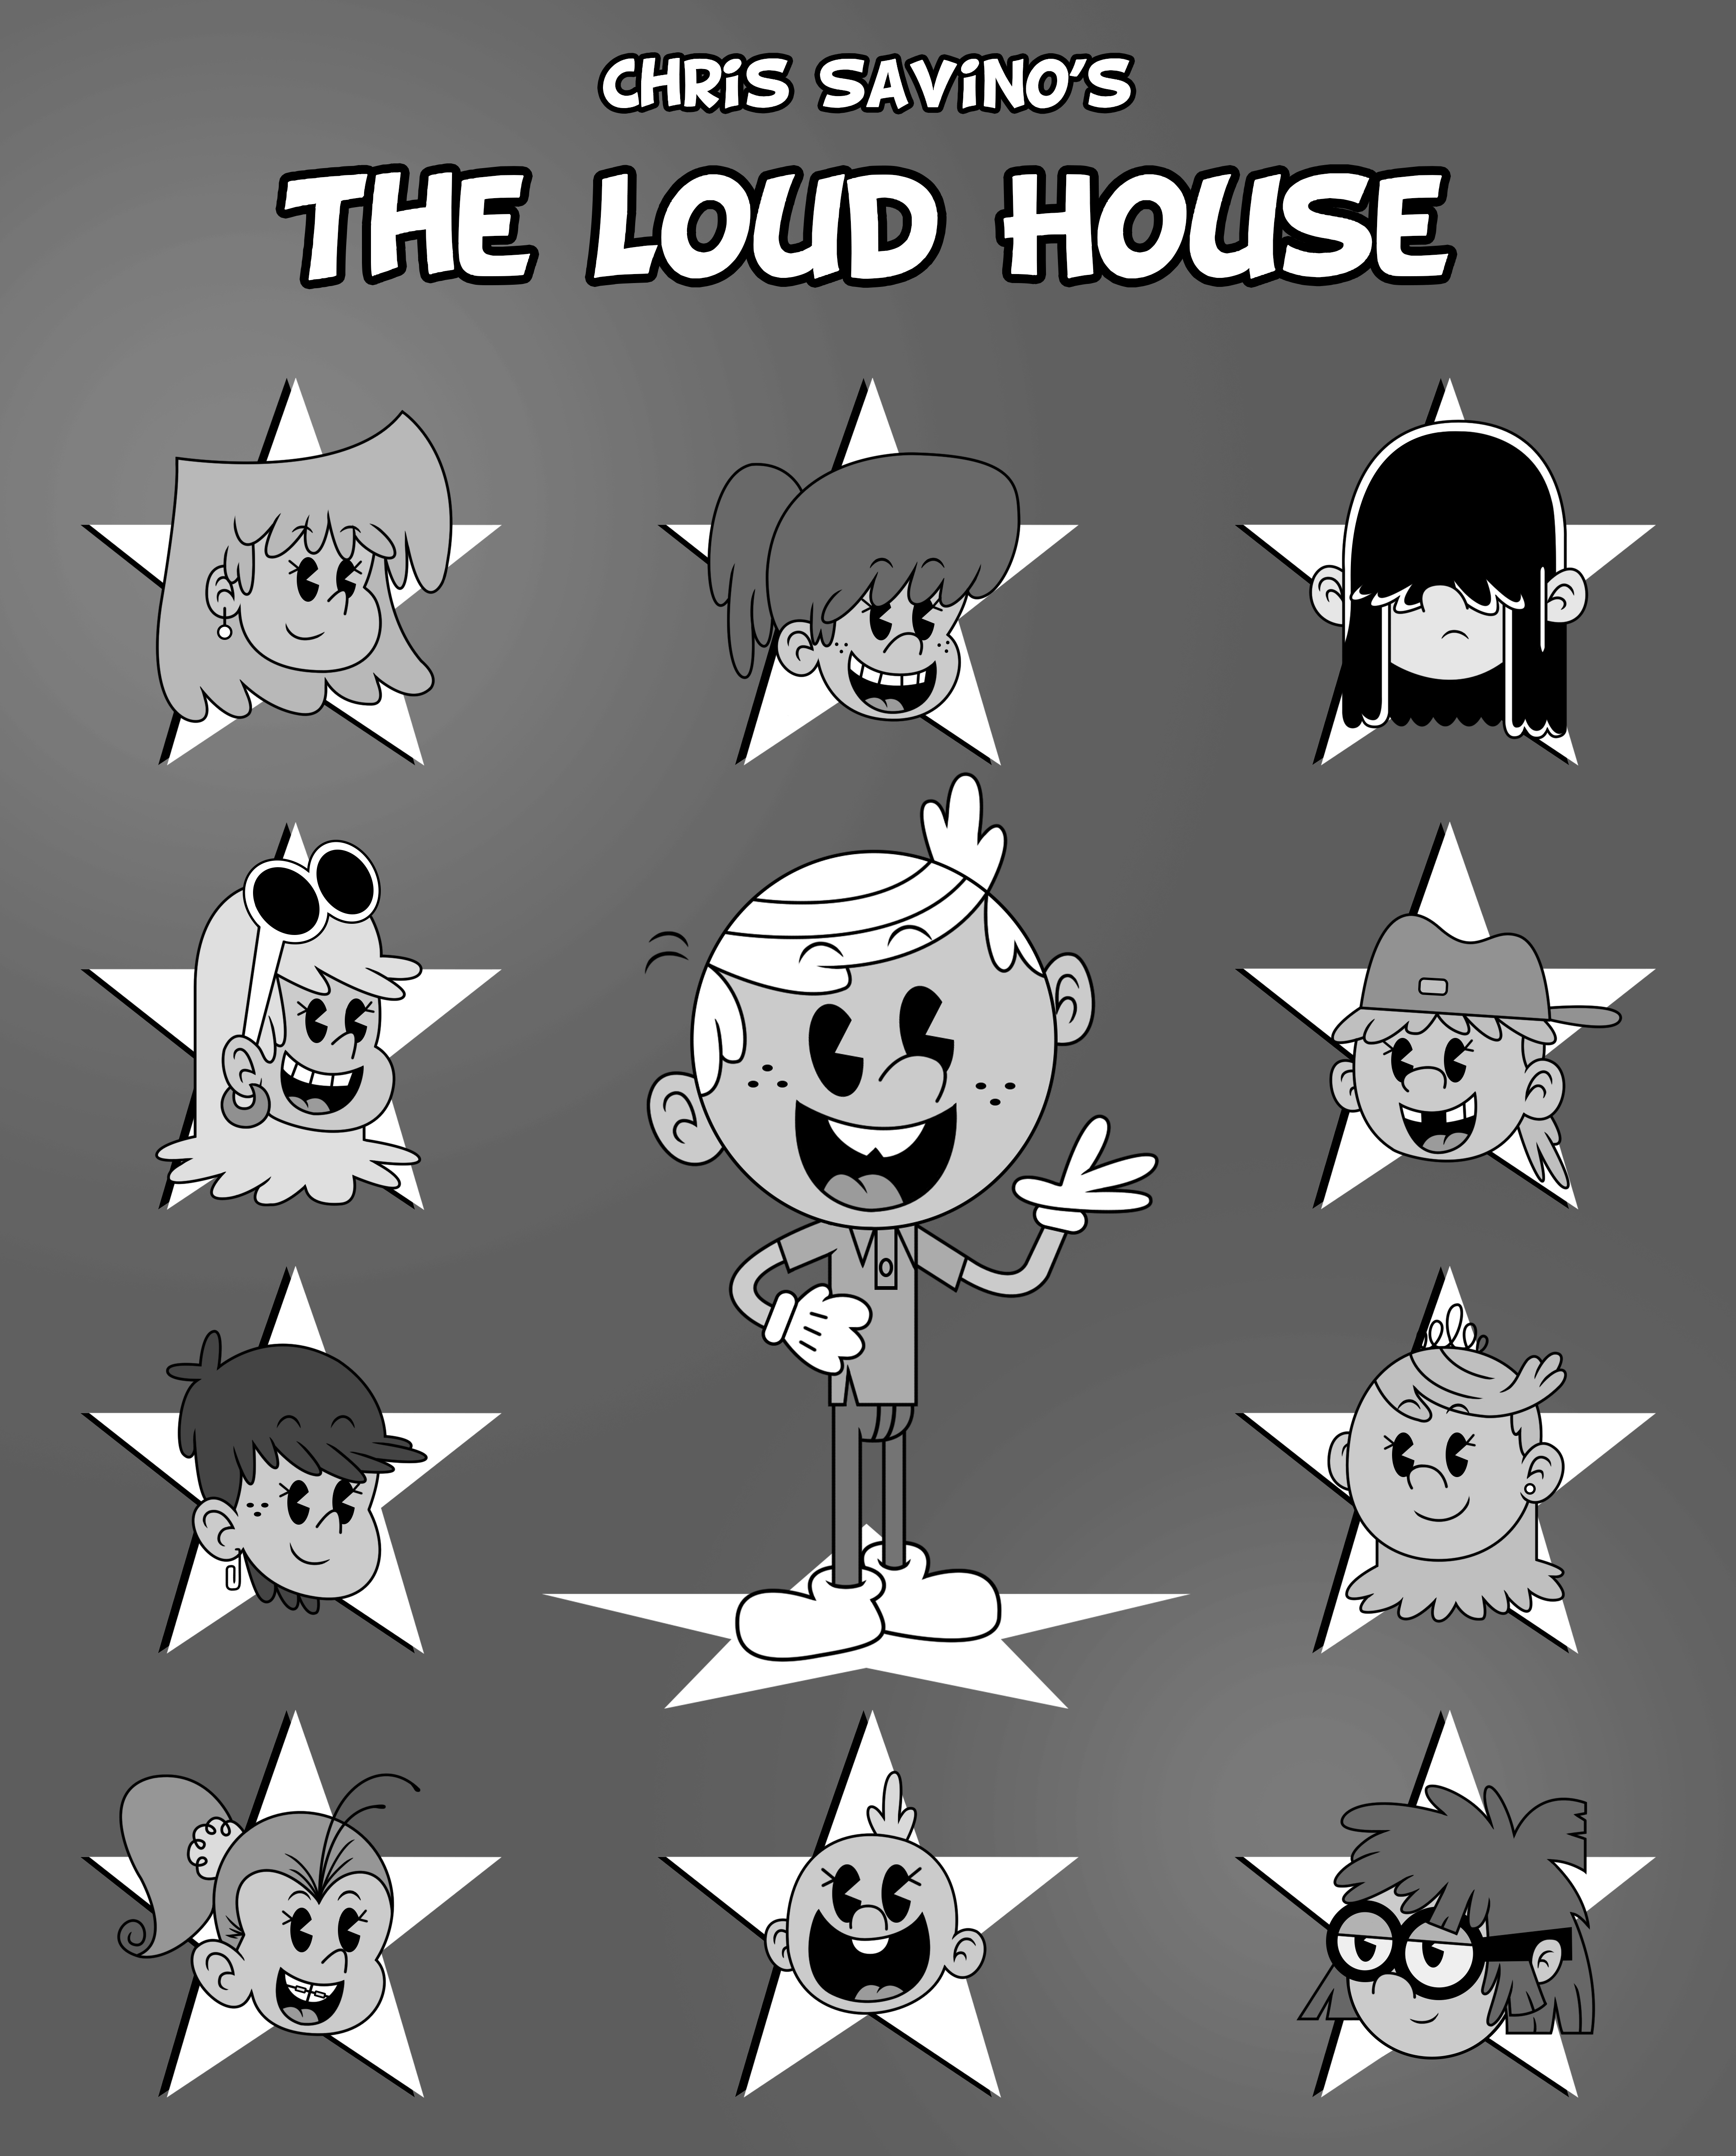 1930s loud house by vincentthecrow on deviantart for Old house tunes